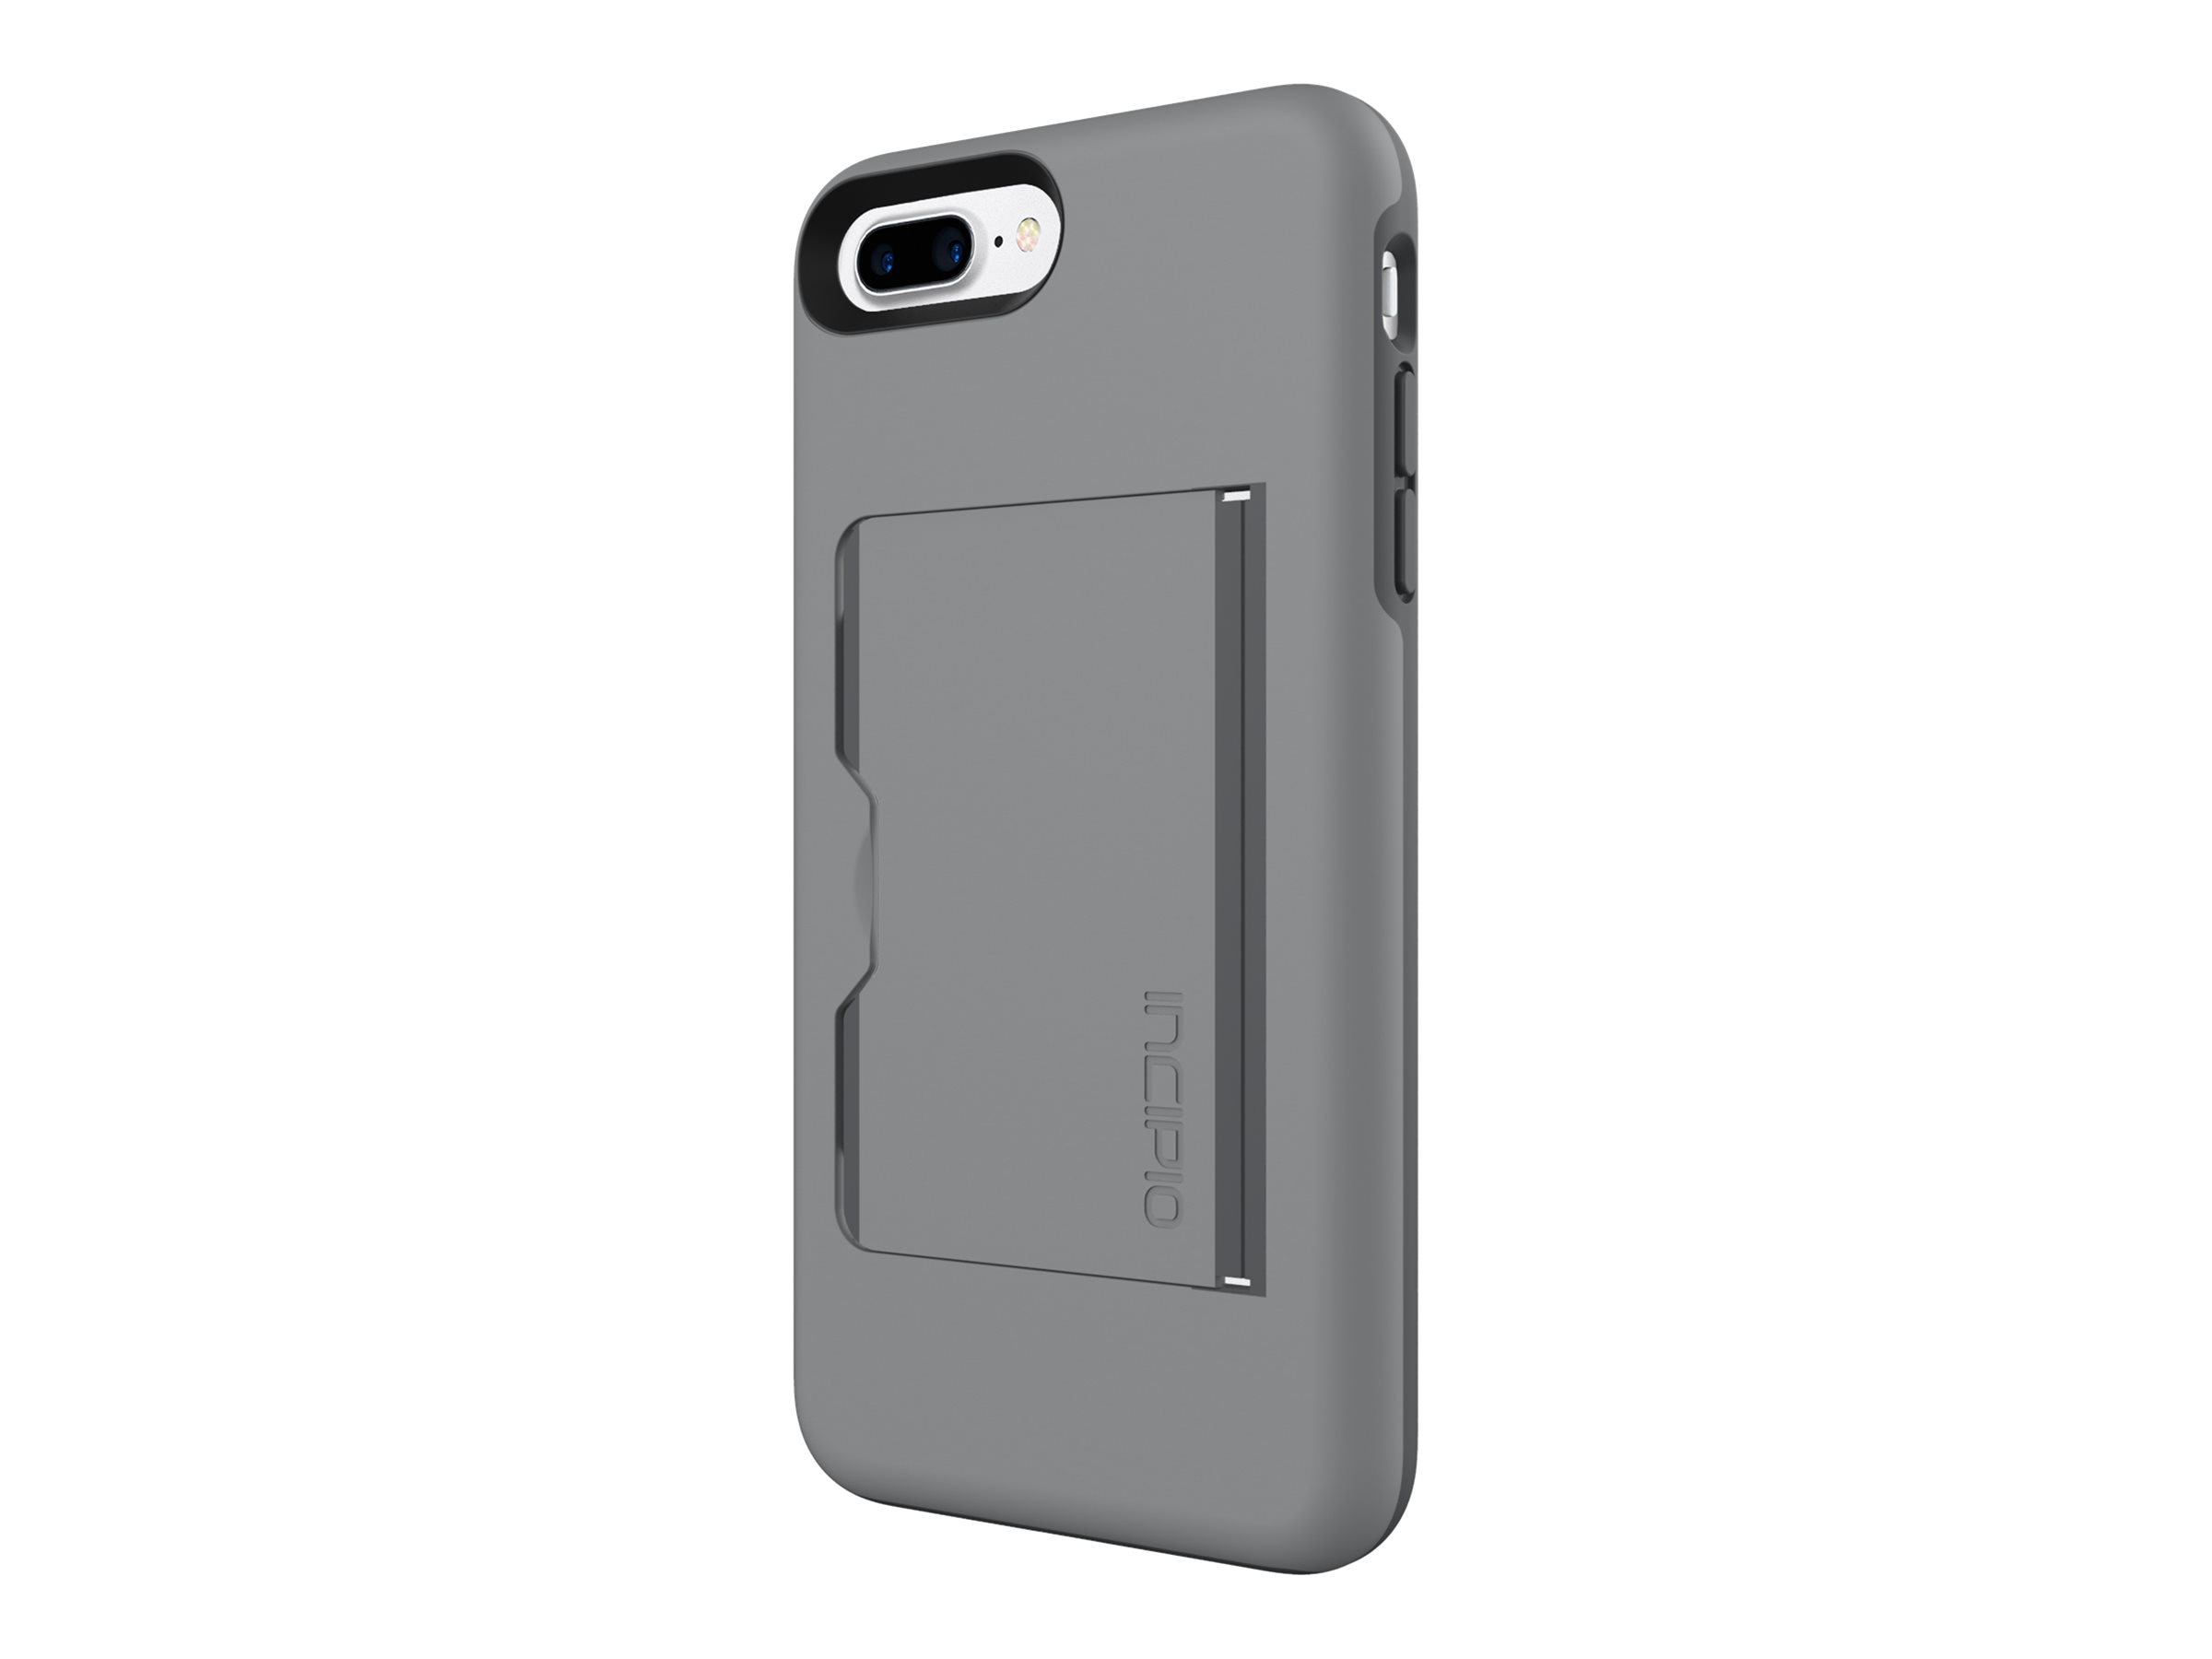 Incipio Stowaway Credit Card Case with Integrated Stand for iPhone 7 Plus, Gray Charcoal, IPH-1503-GYC